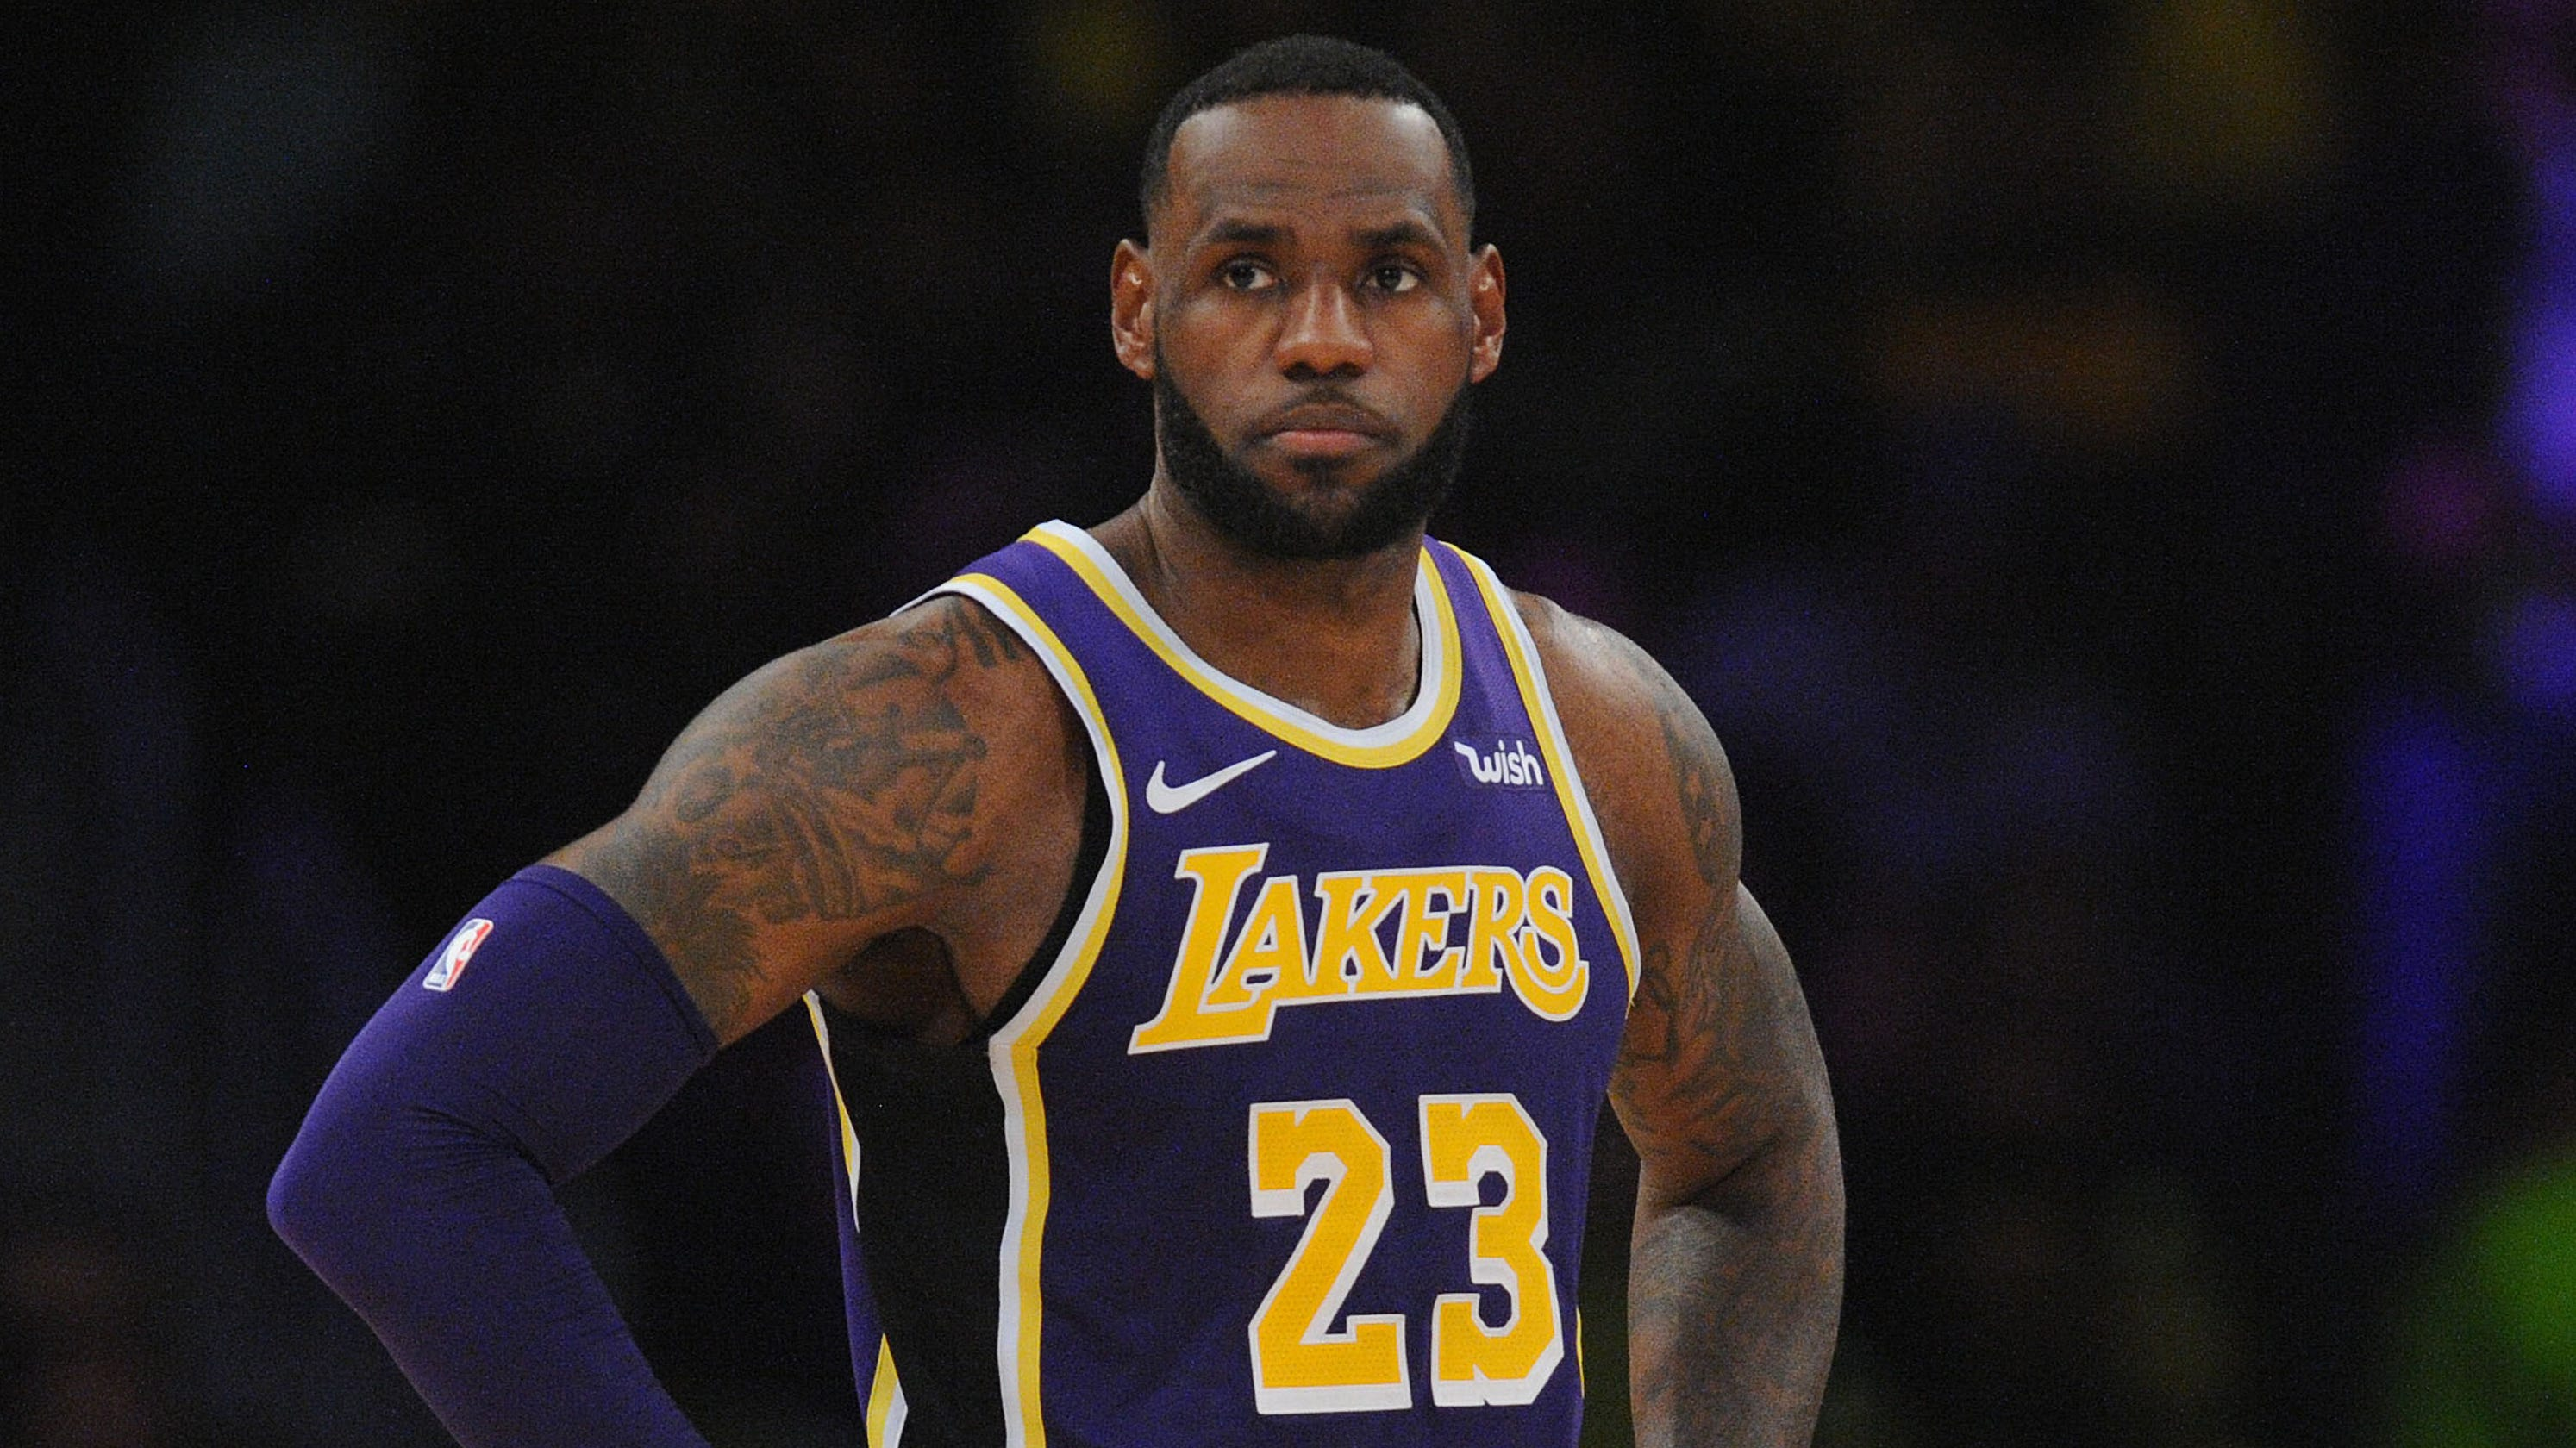 ff05d1b3d LeBron James: Lakers fans left wanting more from three-time NBA champ